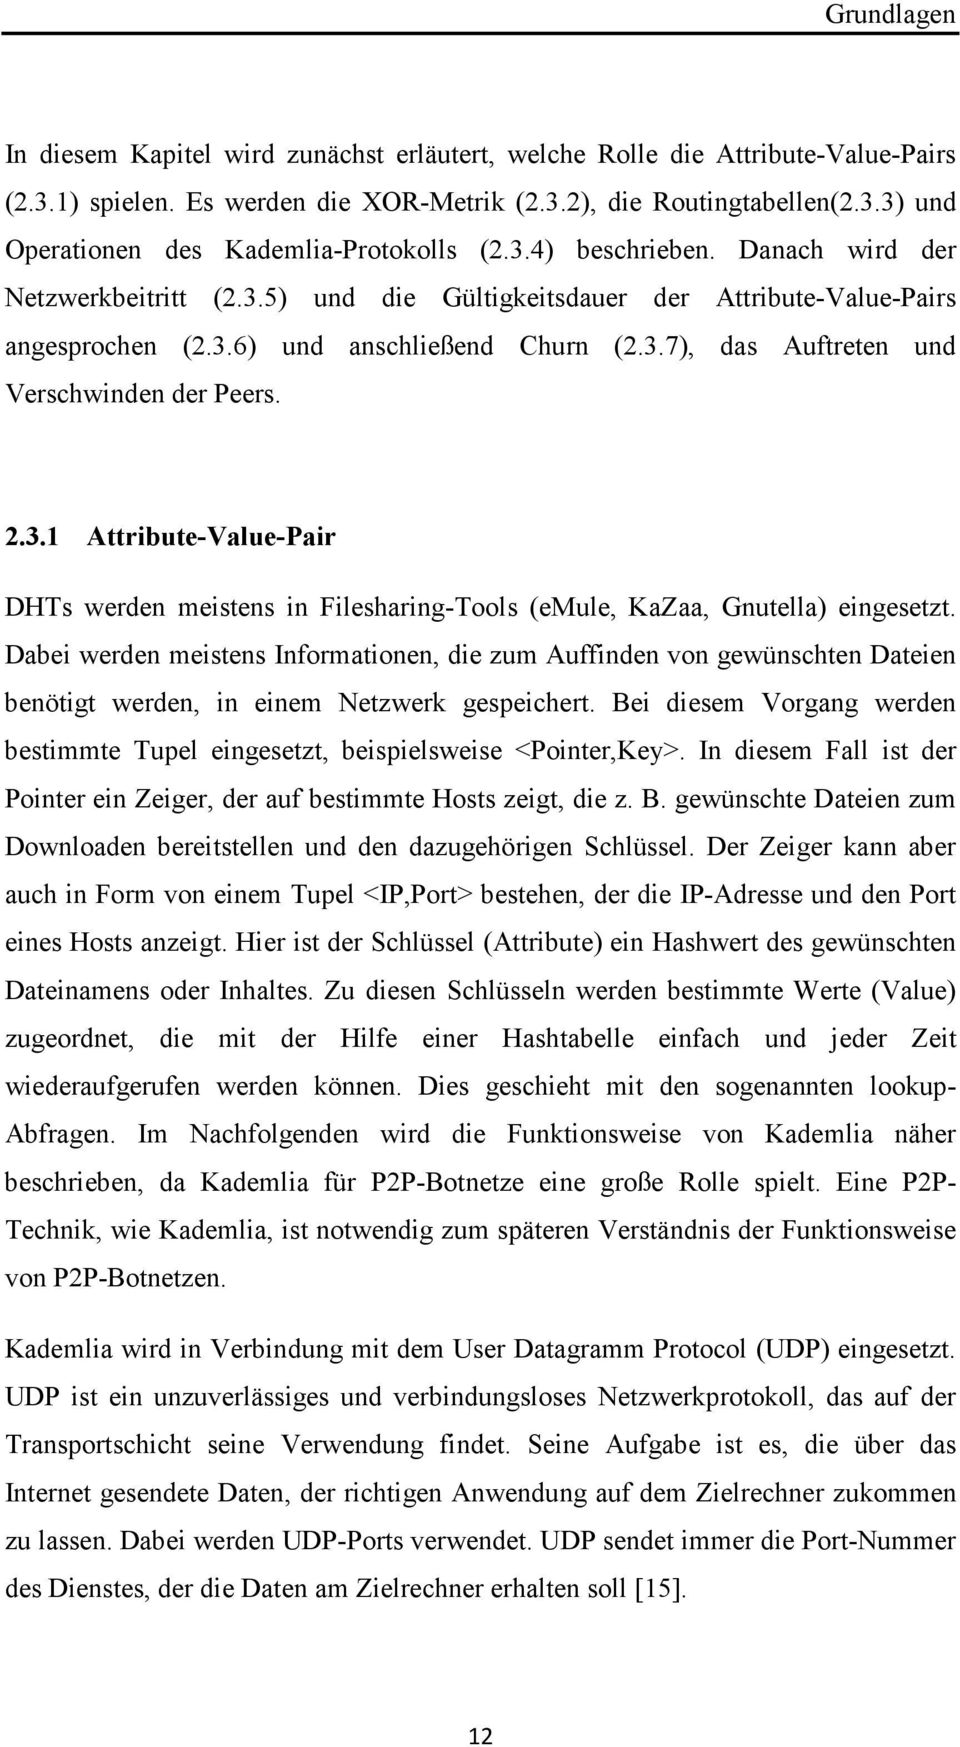 2.3.1 Attribute-Value-Pair DHTs werden meistens in Filesharing-Tools (emule, KaZaa, Gnutella) eingesetzt.